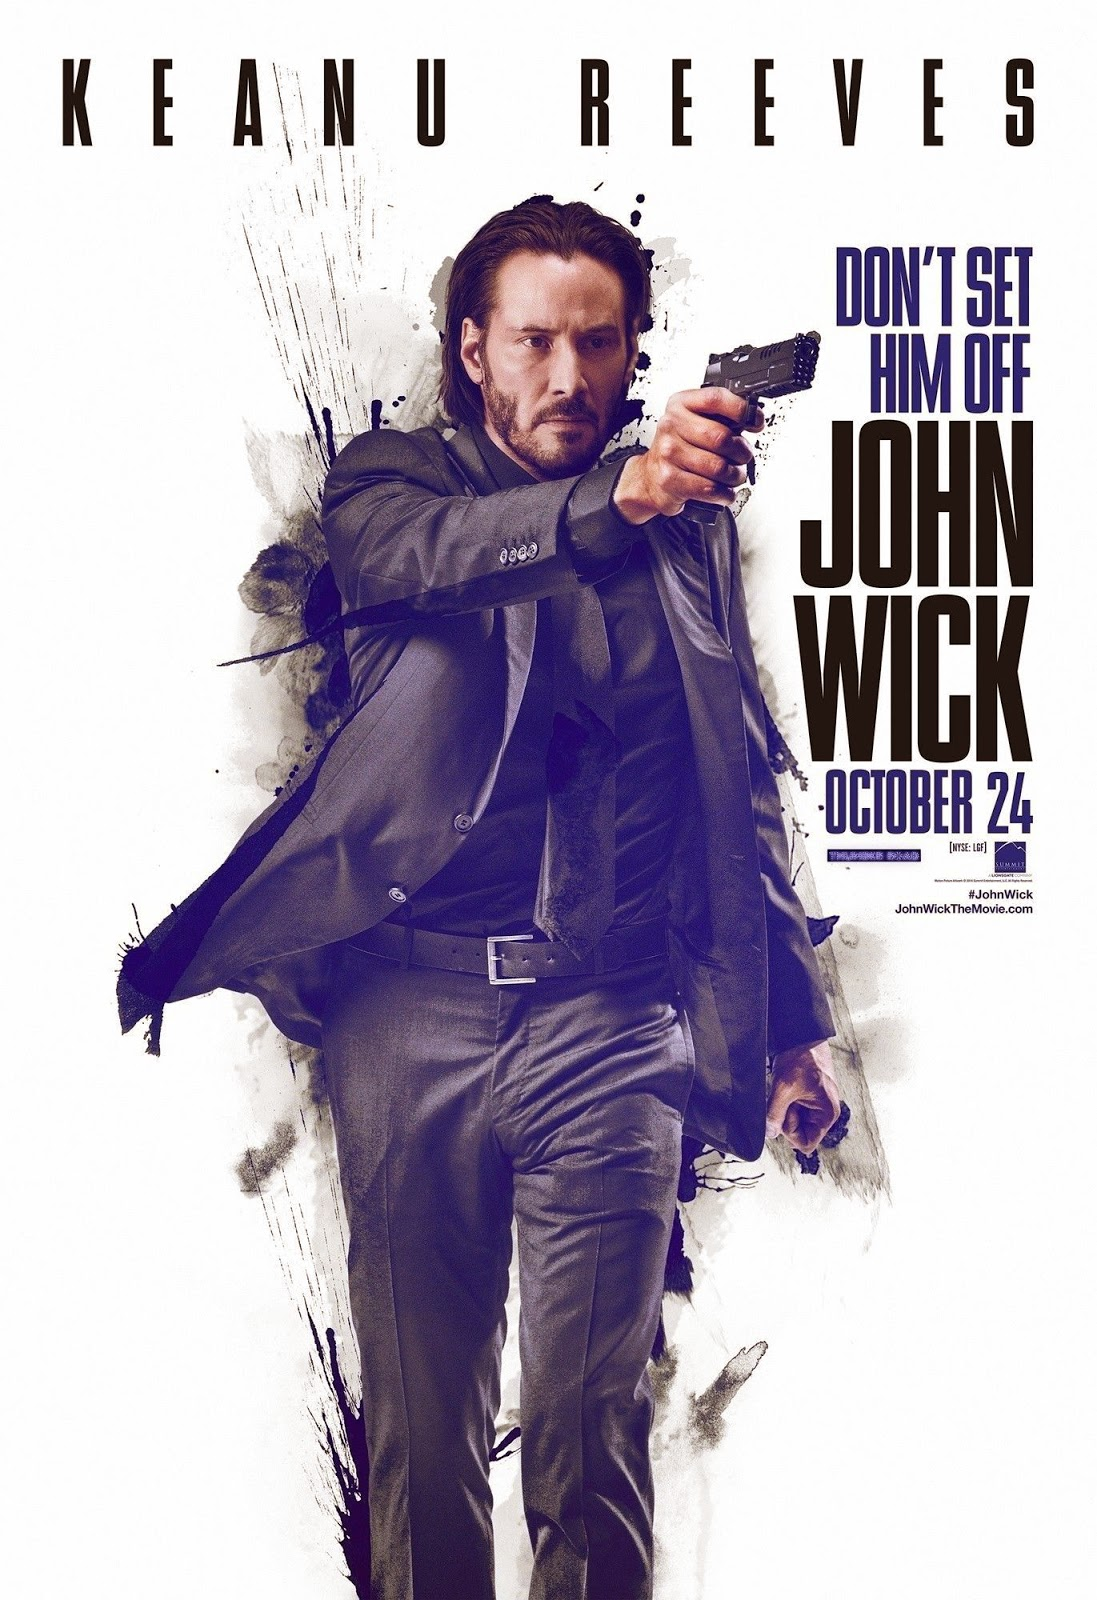 THE FINE ART DINER: Specialized Waste Disposal: John Wick